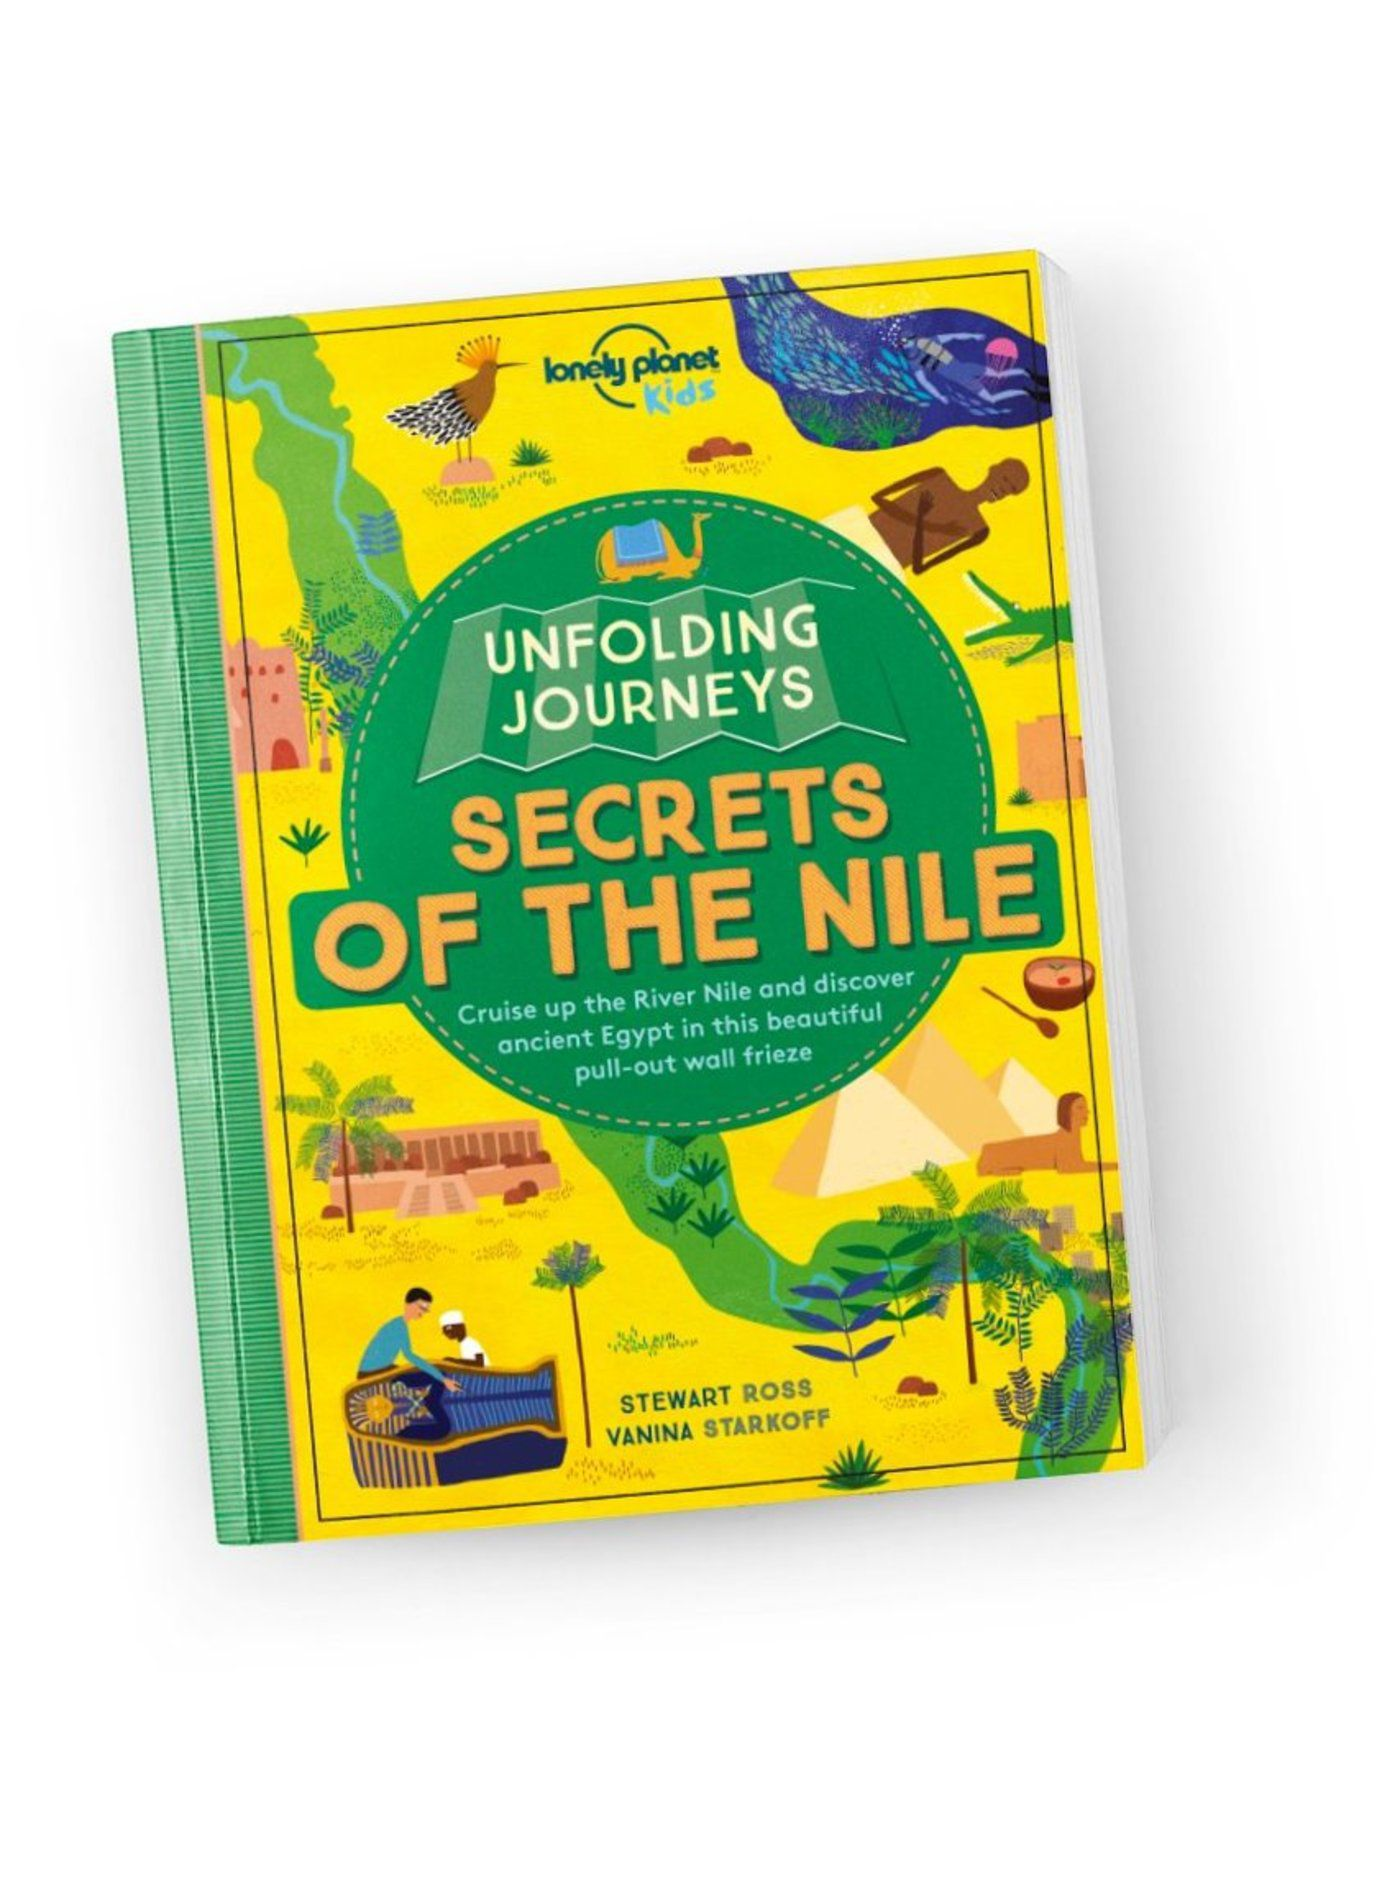 Unfolding Journeys: Secrets of the Nile